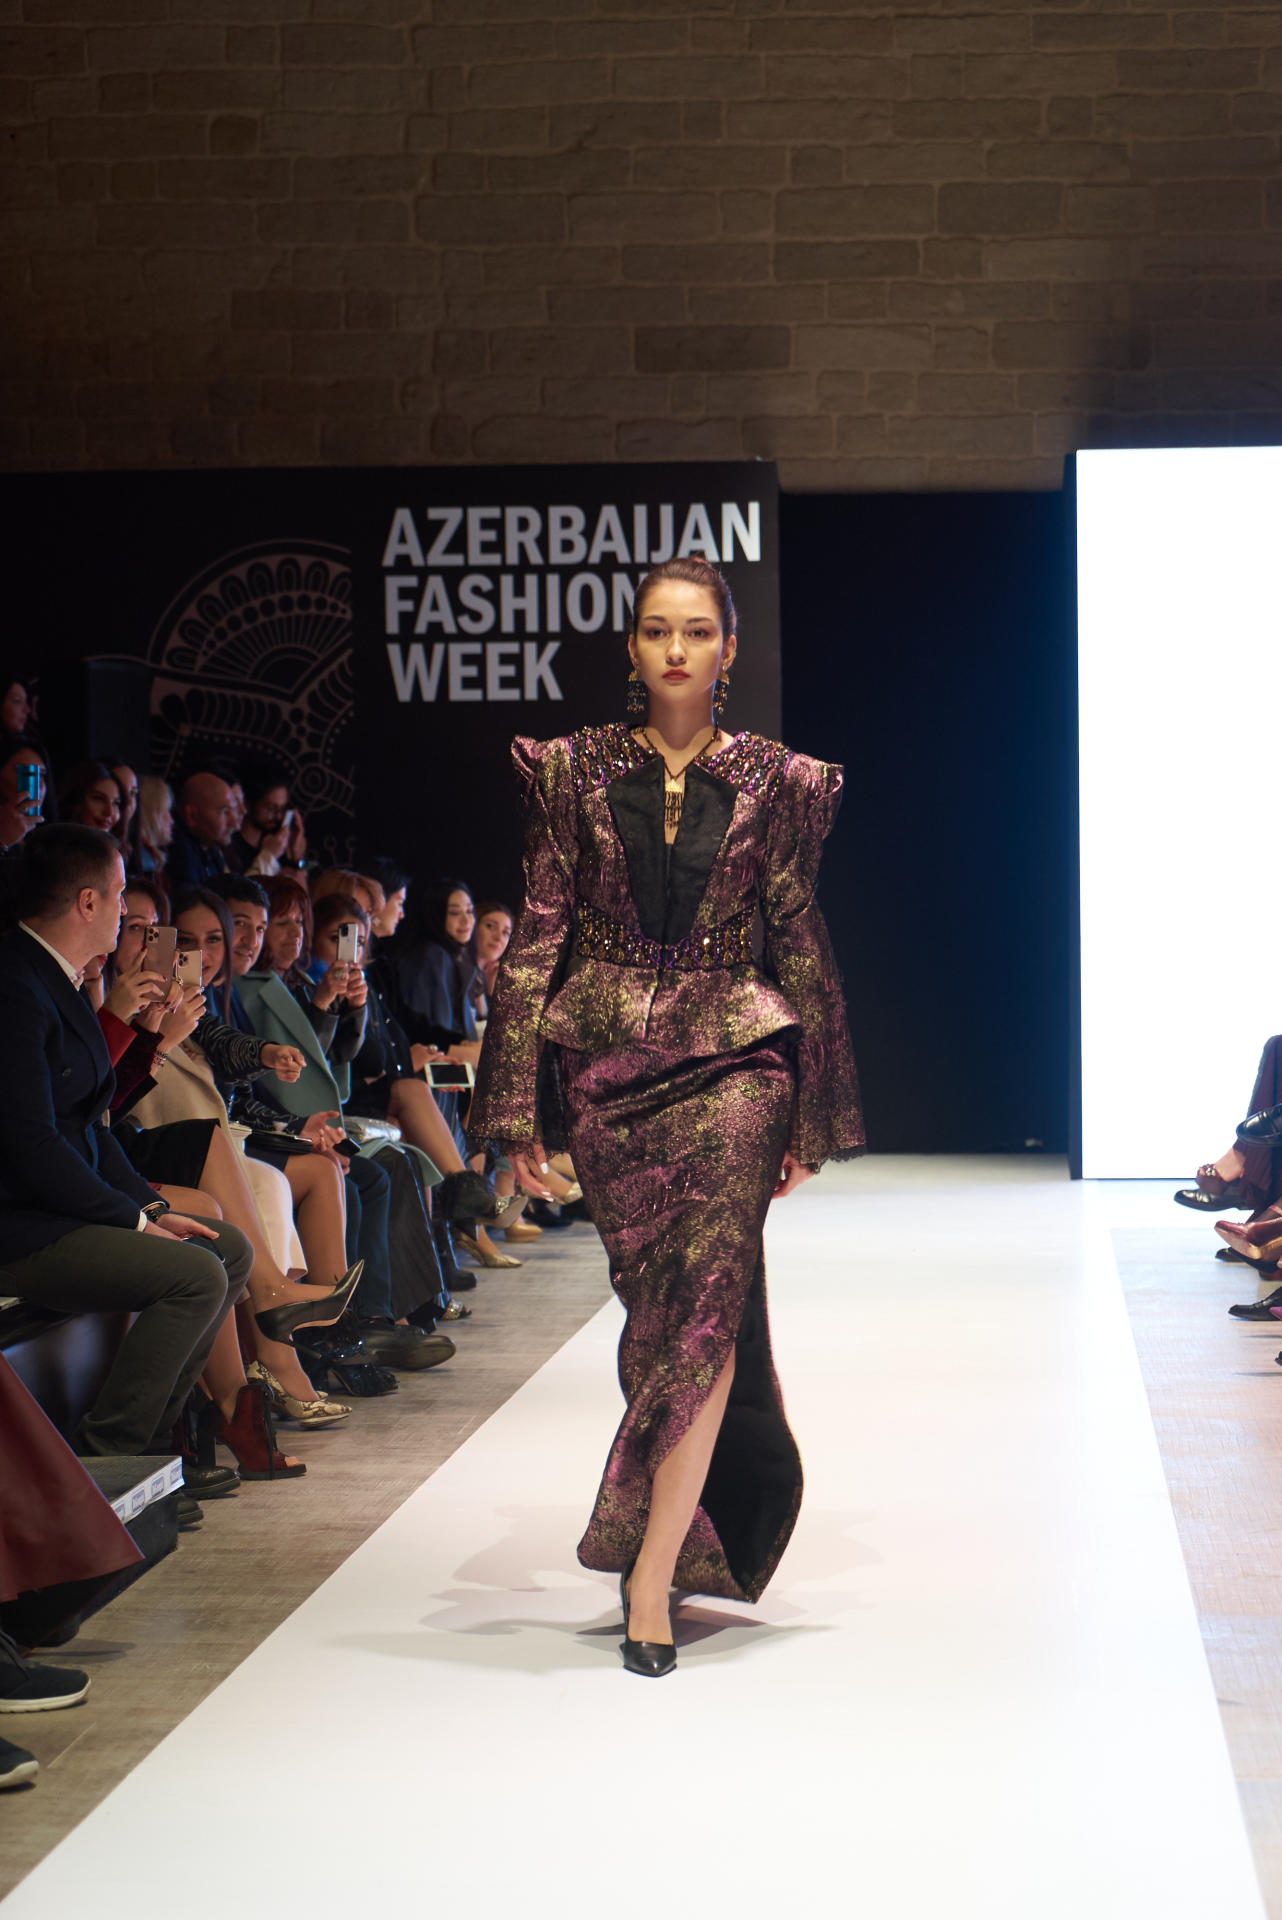 Юбилейный Azerbaijan Fashion Week